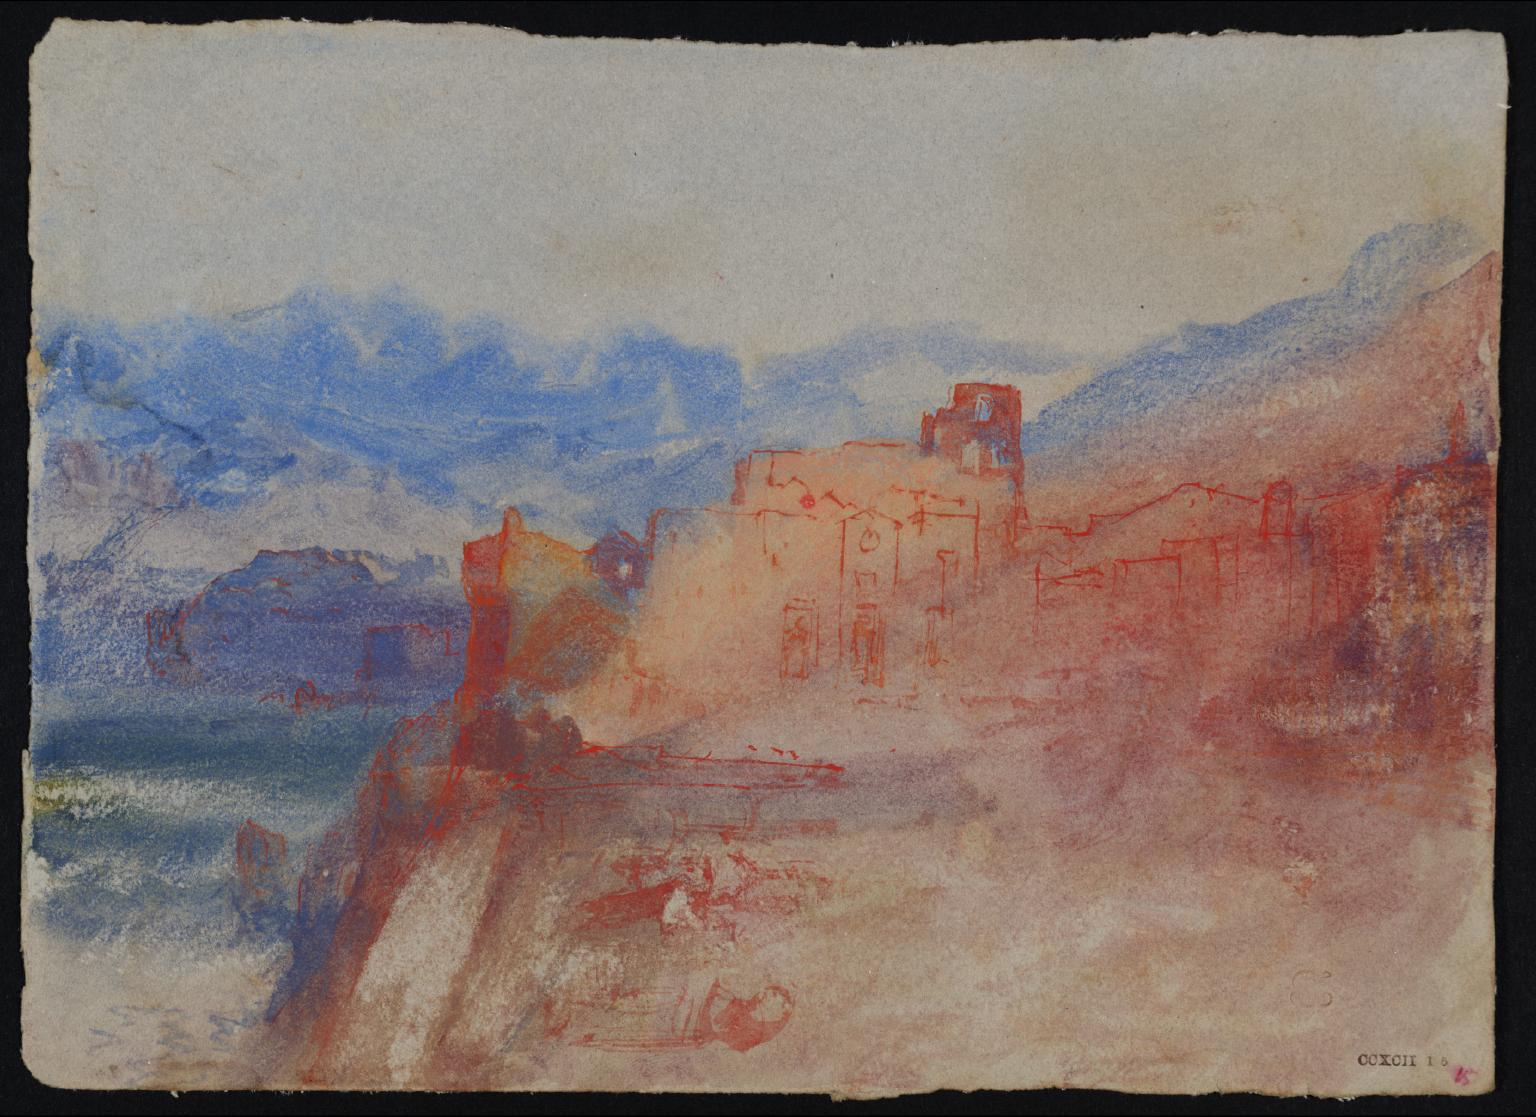 Waterside Buildings and Mountains, ?South of France or Italy c.1834 Joseph Mallord William Turner 1775-1851 Accepted by the nation as part of the Turner Bequest 1856 http://www.tate.org.uk/art/work/D28962